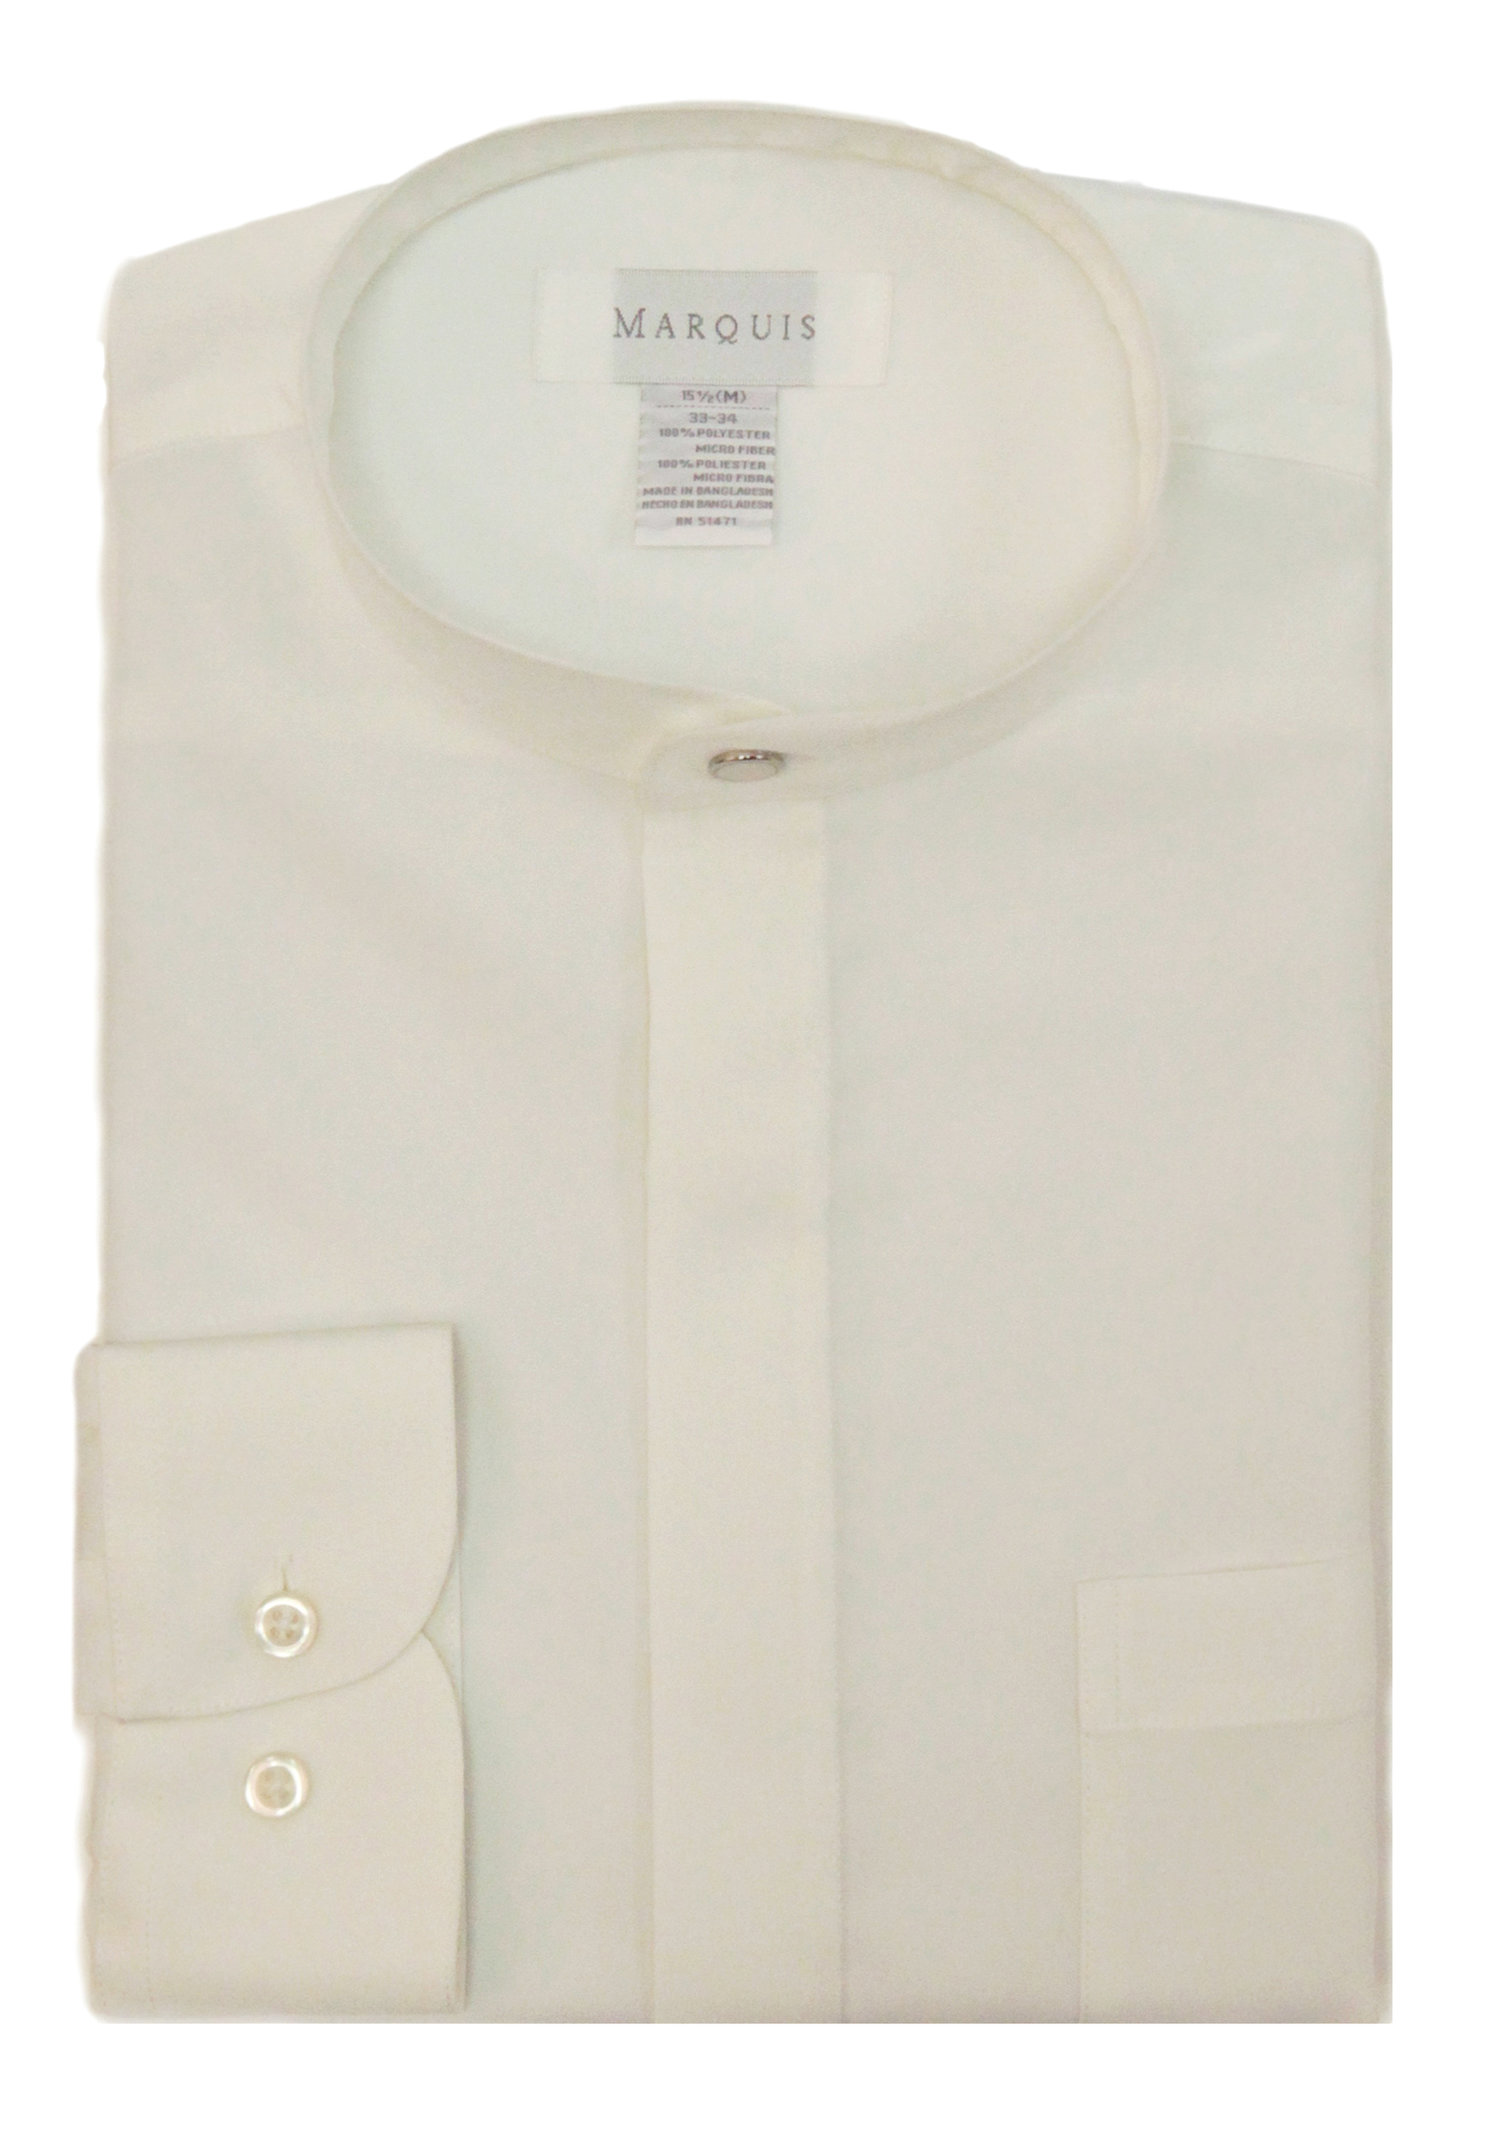 Banded Collar Shirt New M A R Q U I S